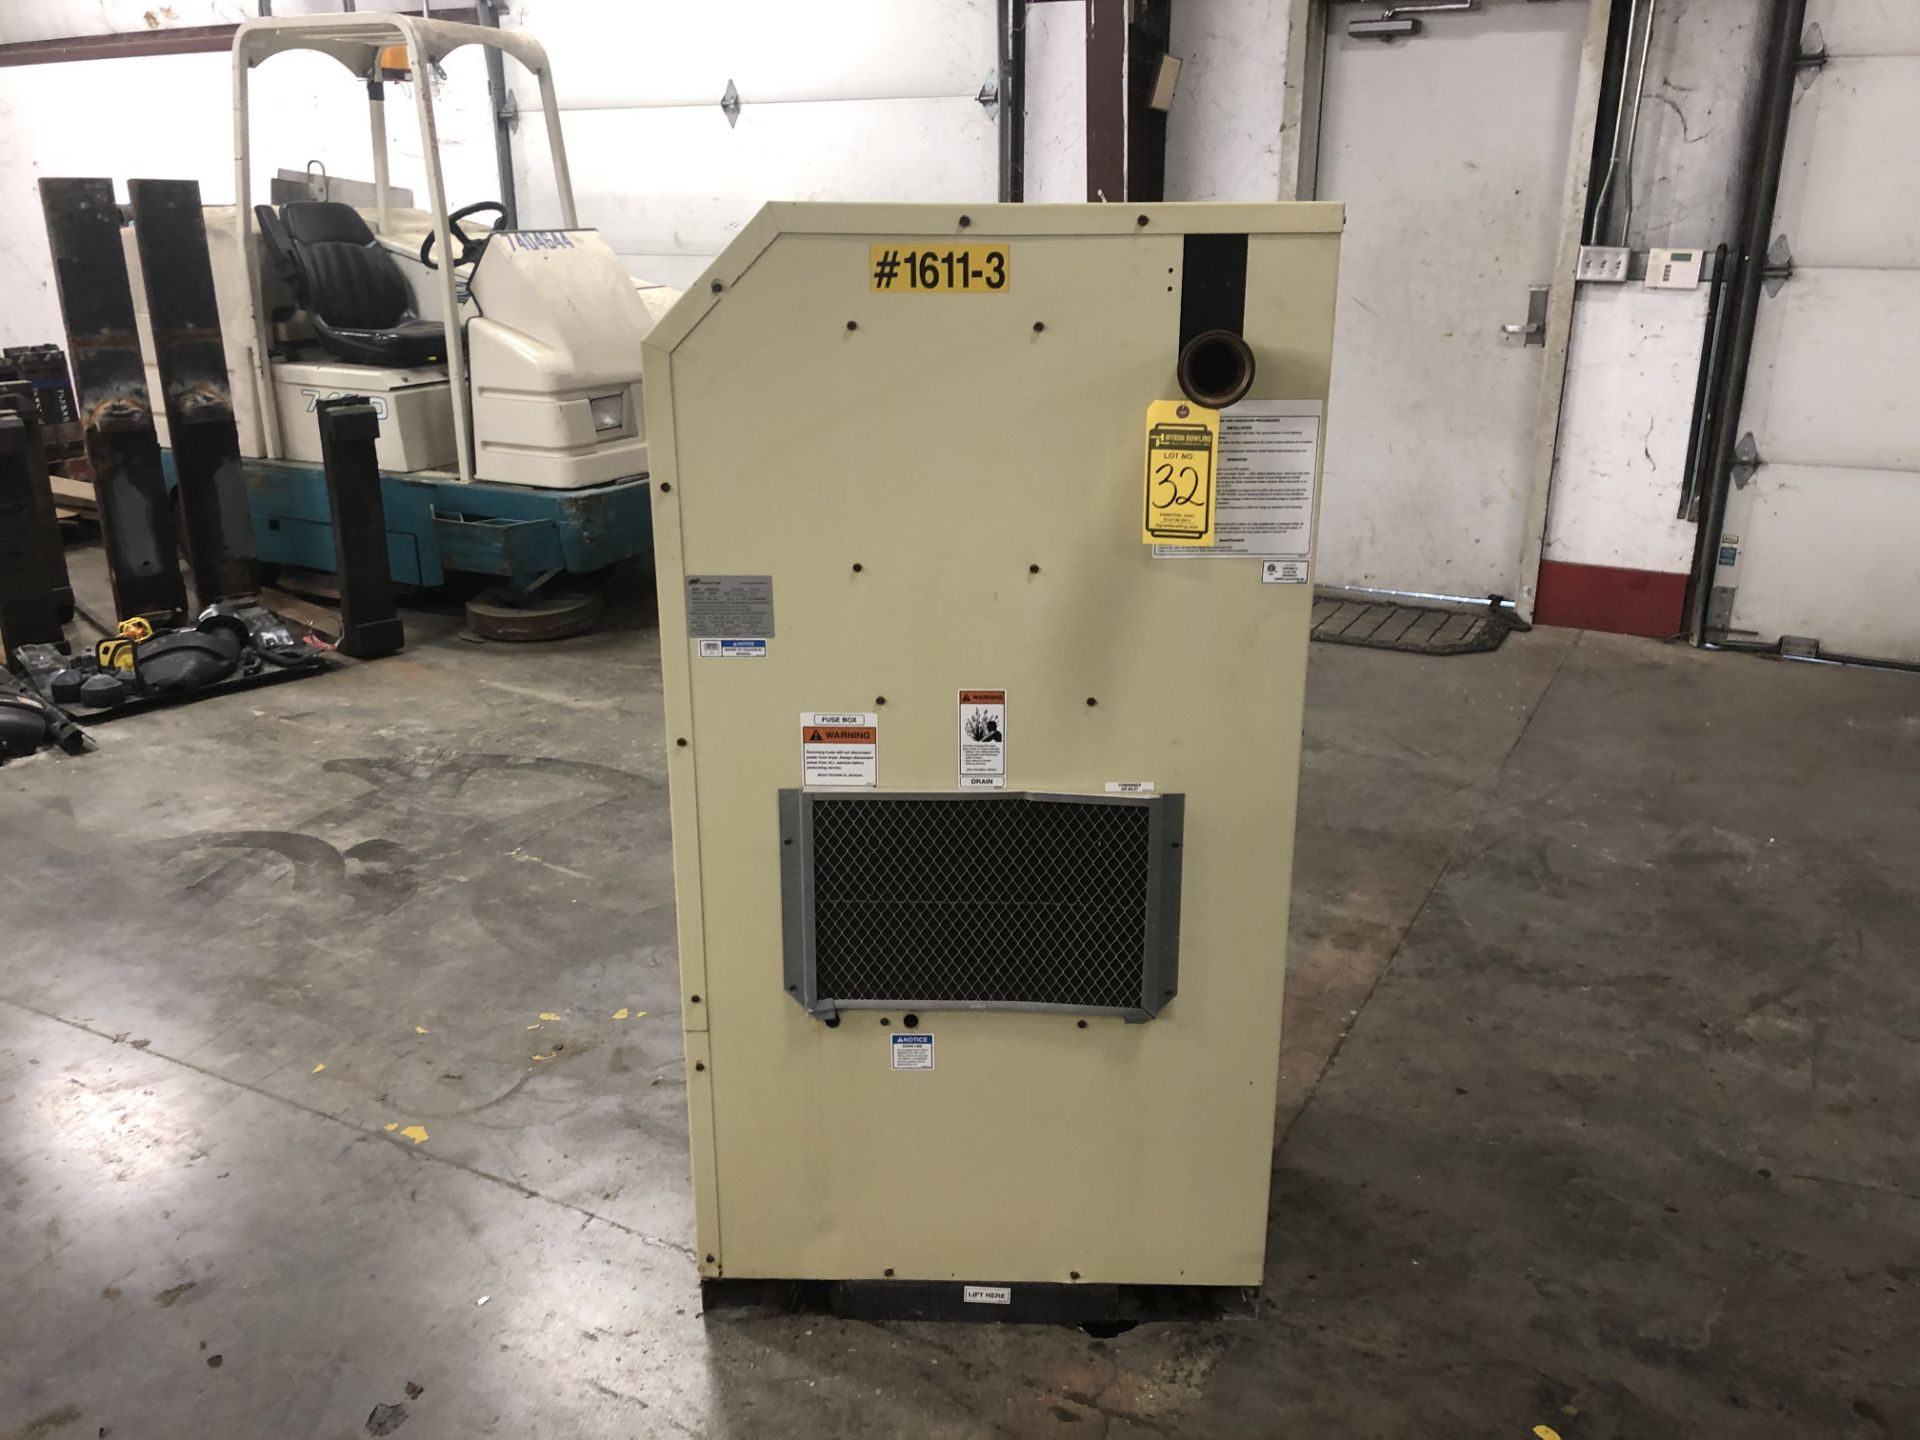 Lot 32 - 2010 Ingersoll Rand Air Dryer, Model: NVC300A400, Serial Number: 329160, 230 PSIG